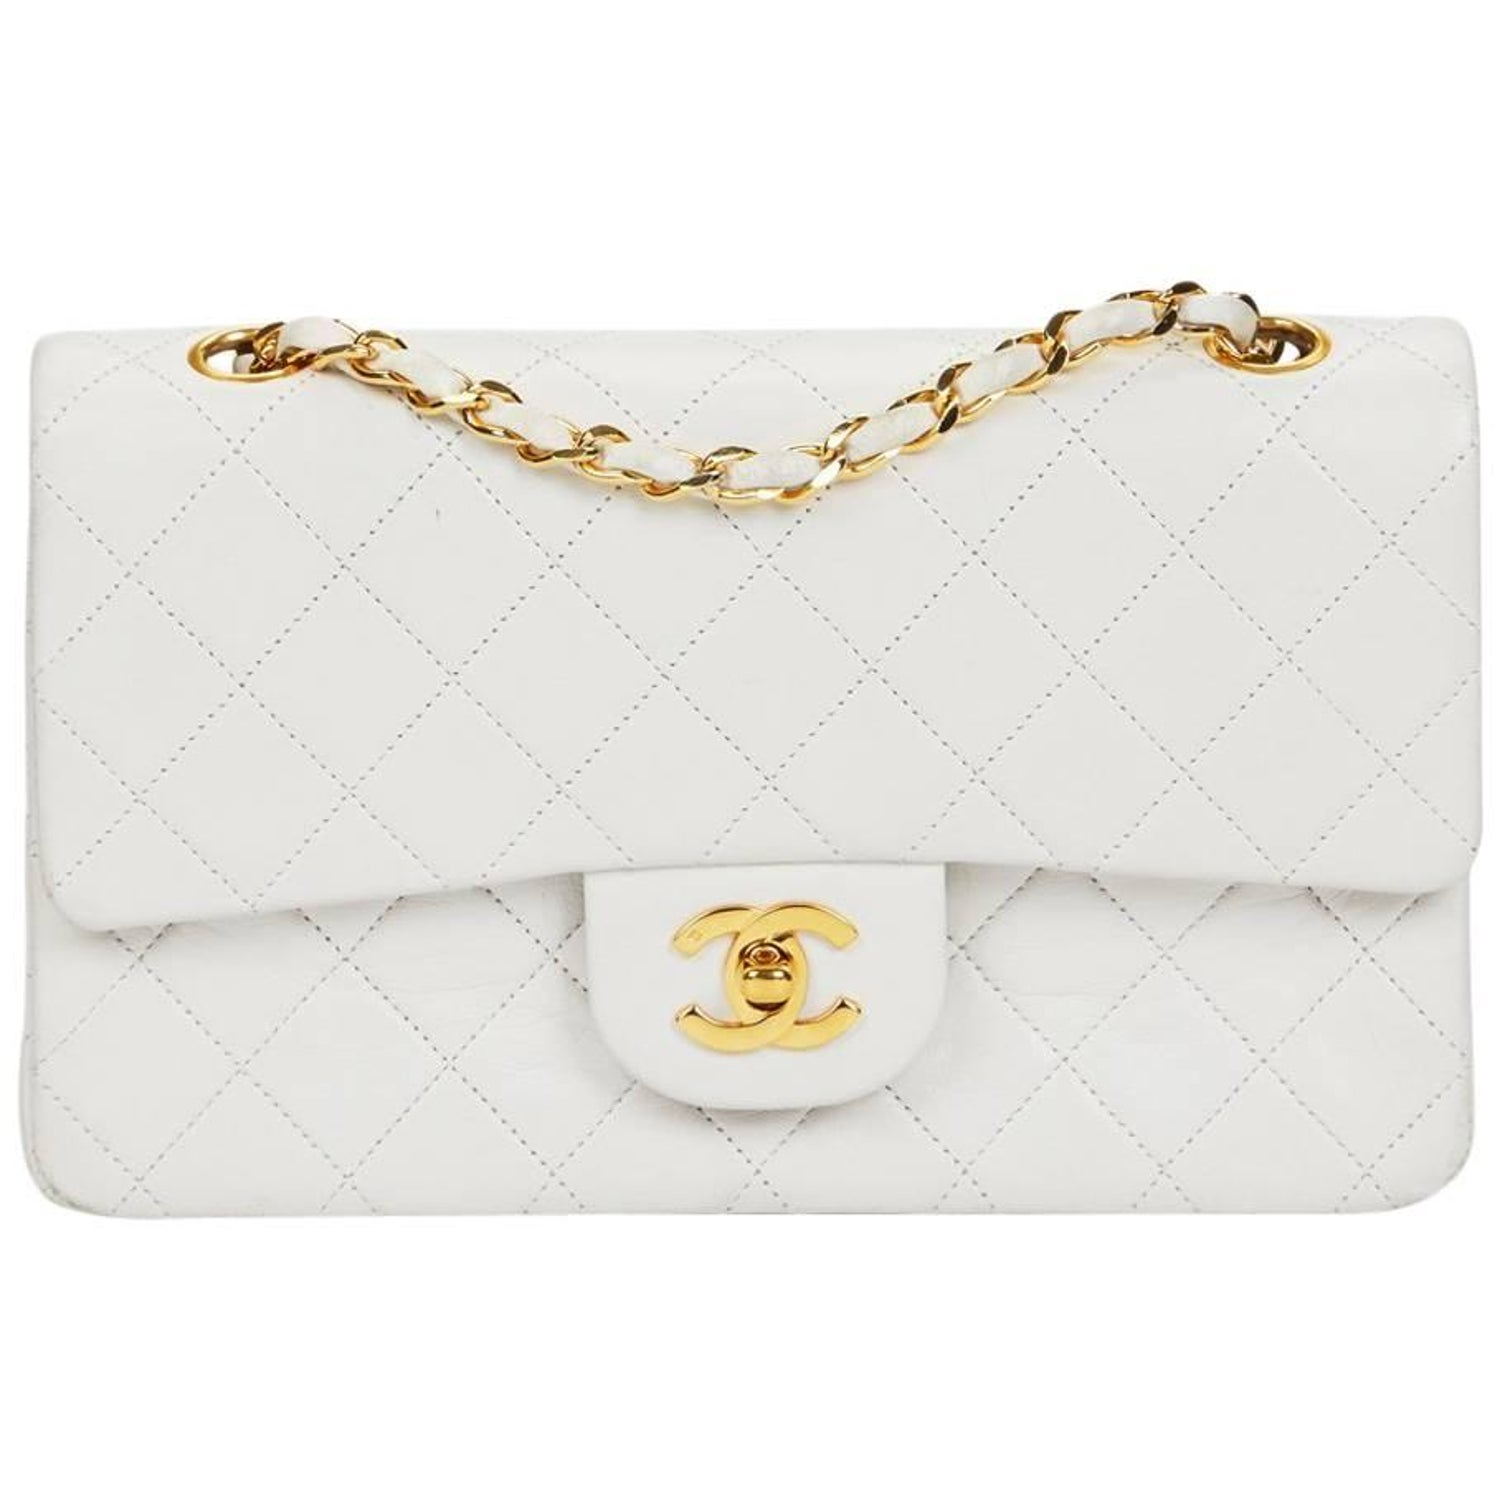 8103f51aa889 1990 Chanel White Quilted Lambskin Vintage Small Classic Double Flap Bag at  1stdibs